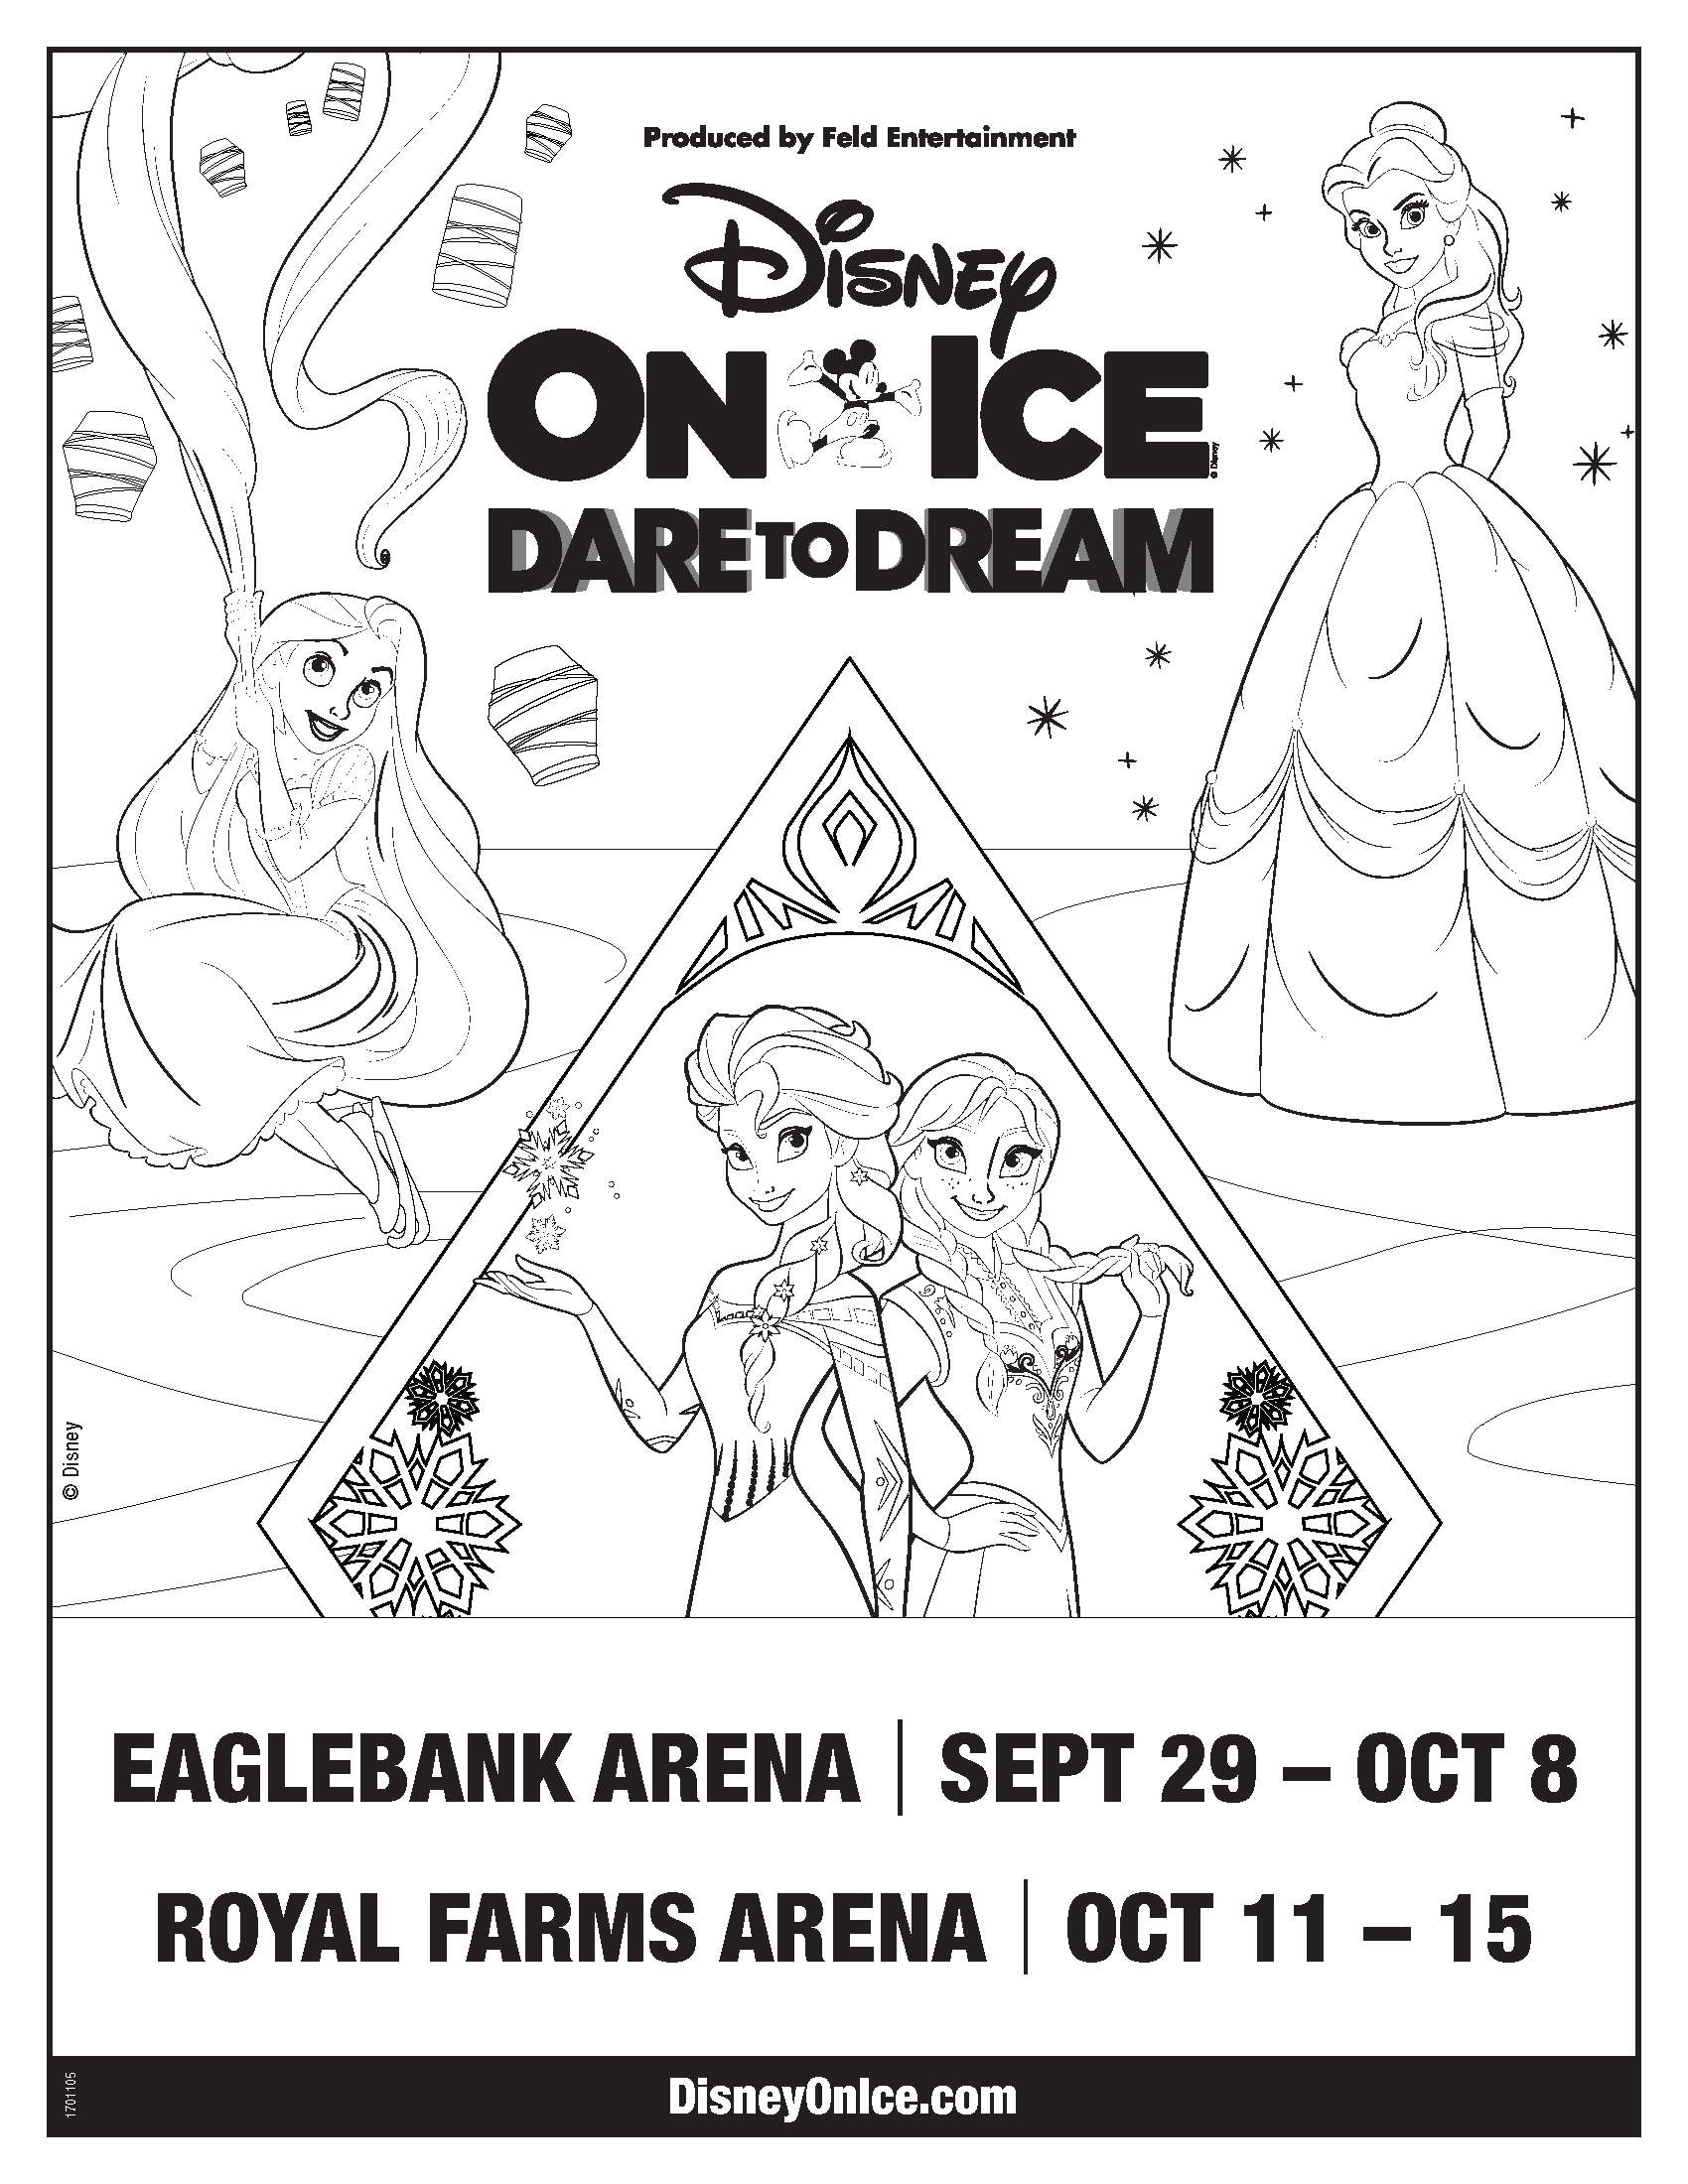 Disney on Ice: Discount Code, Trivia and Coloring Sheet | Macaroni Kid